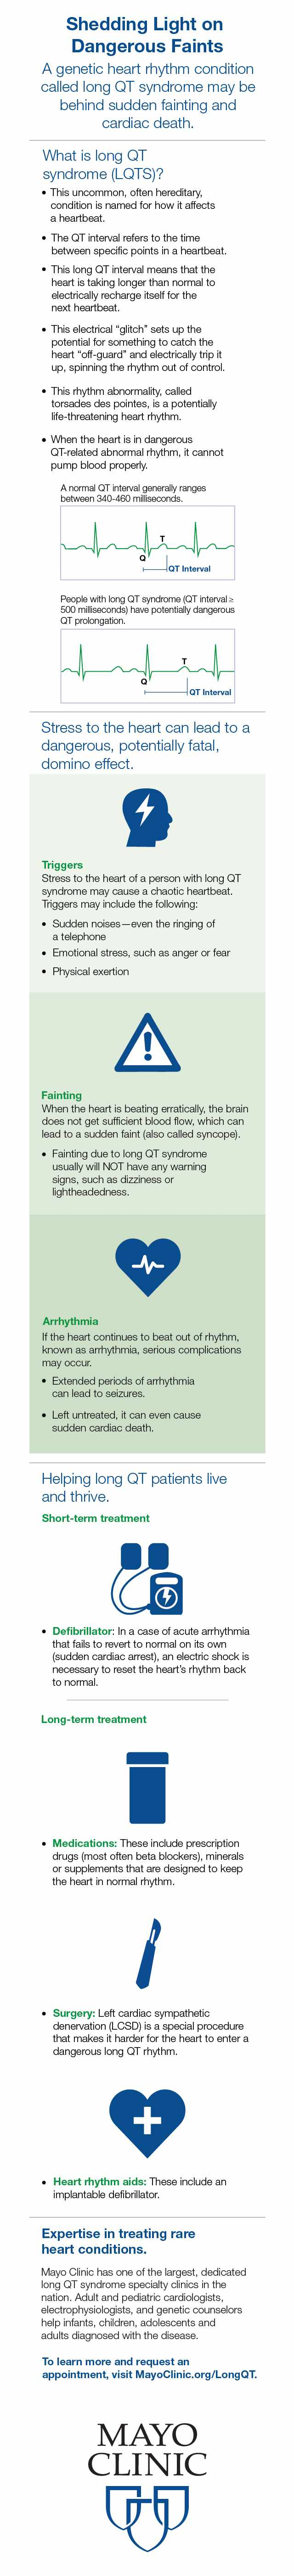 Infographic for Long QT syndrome